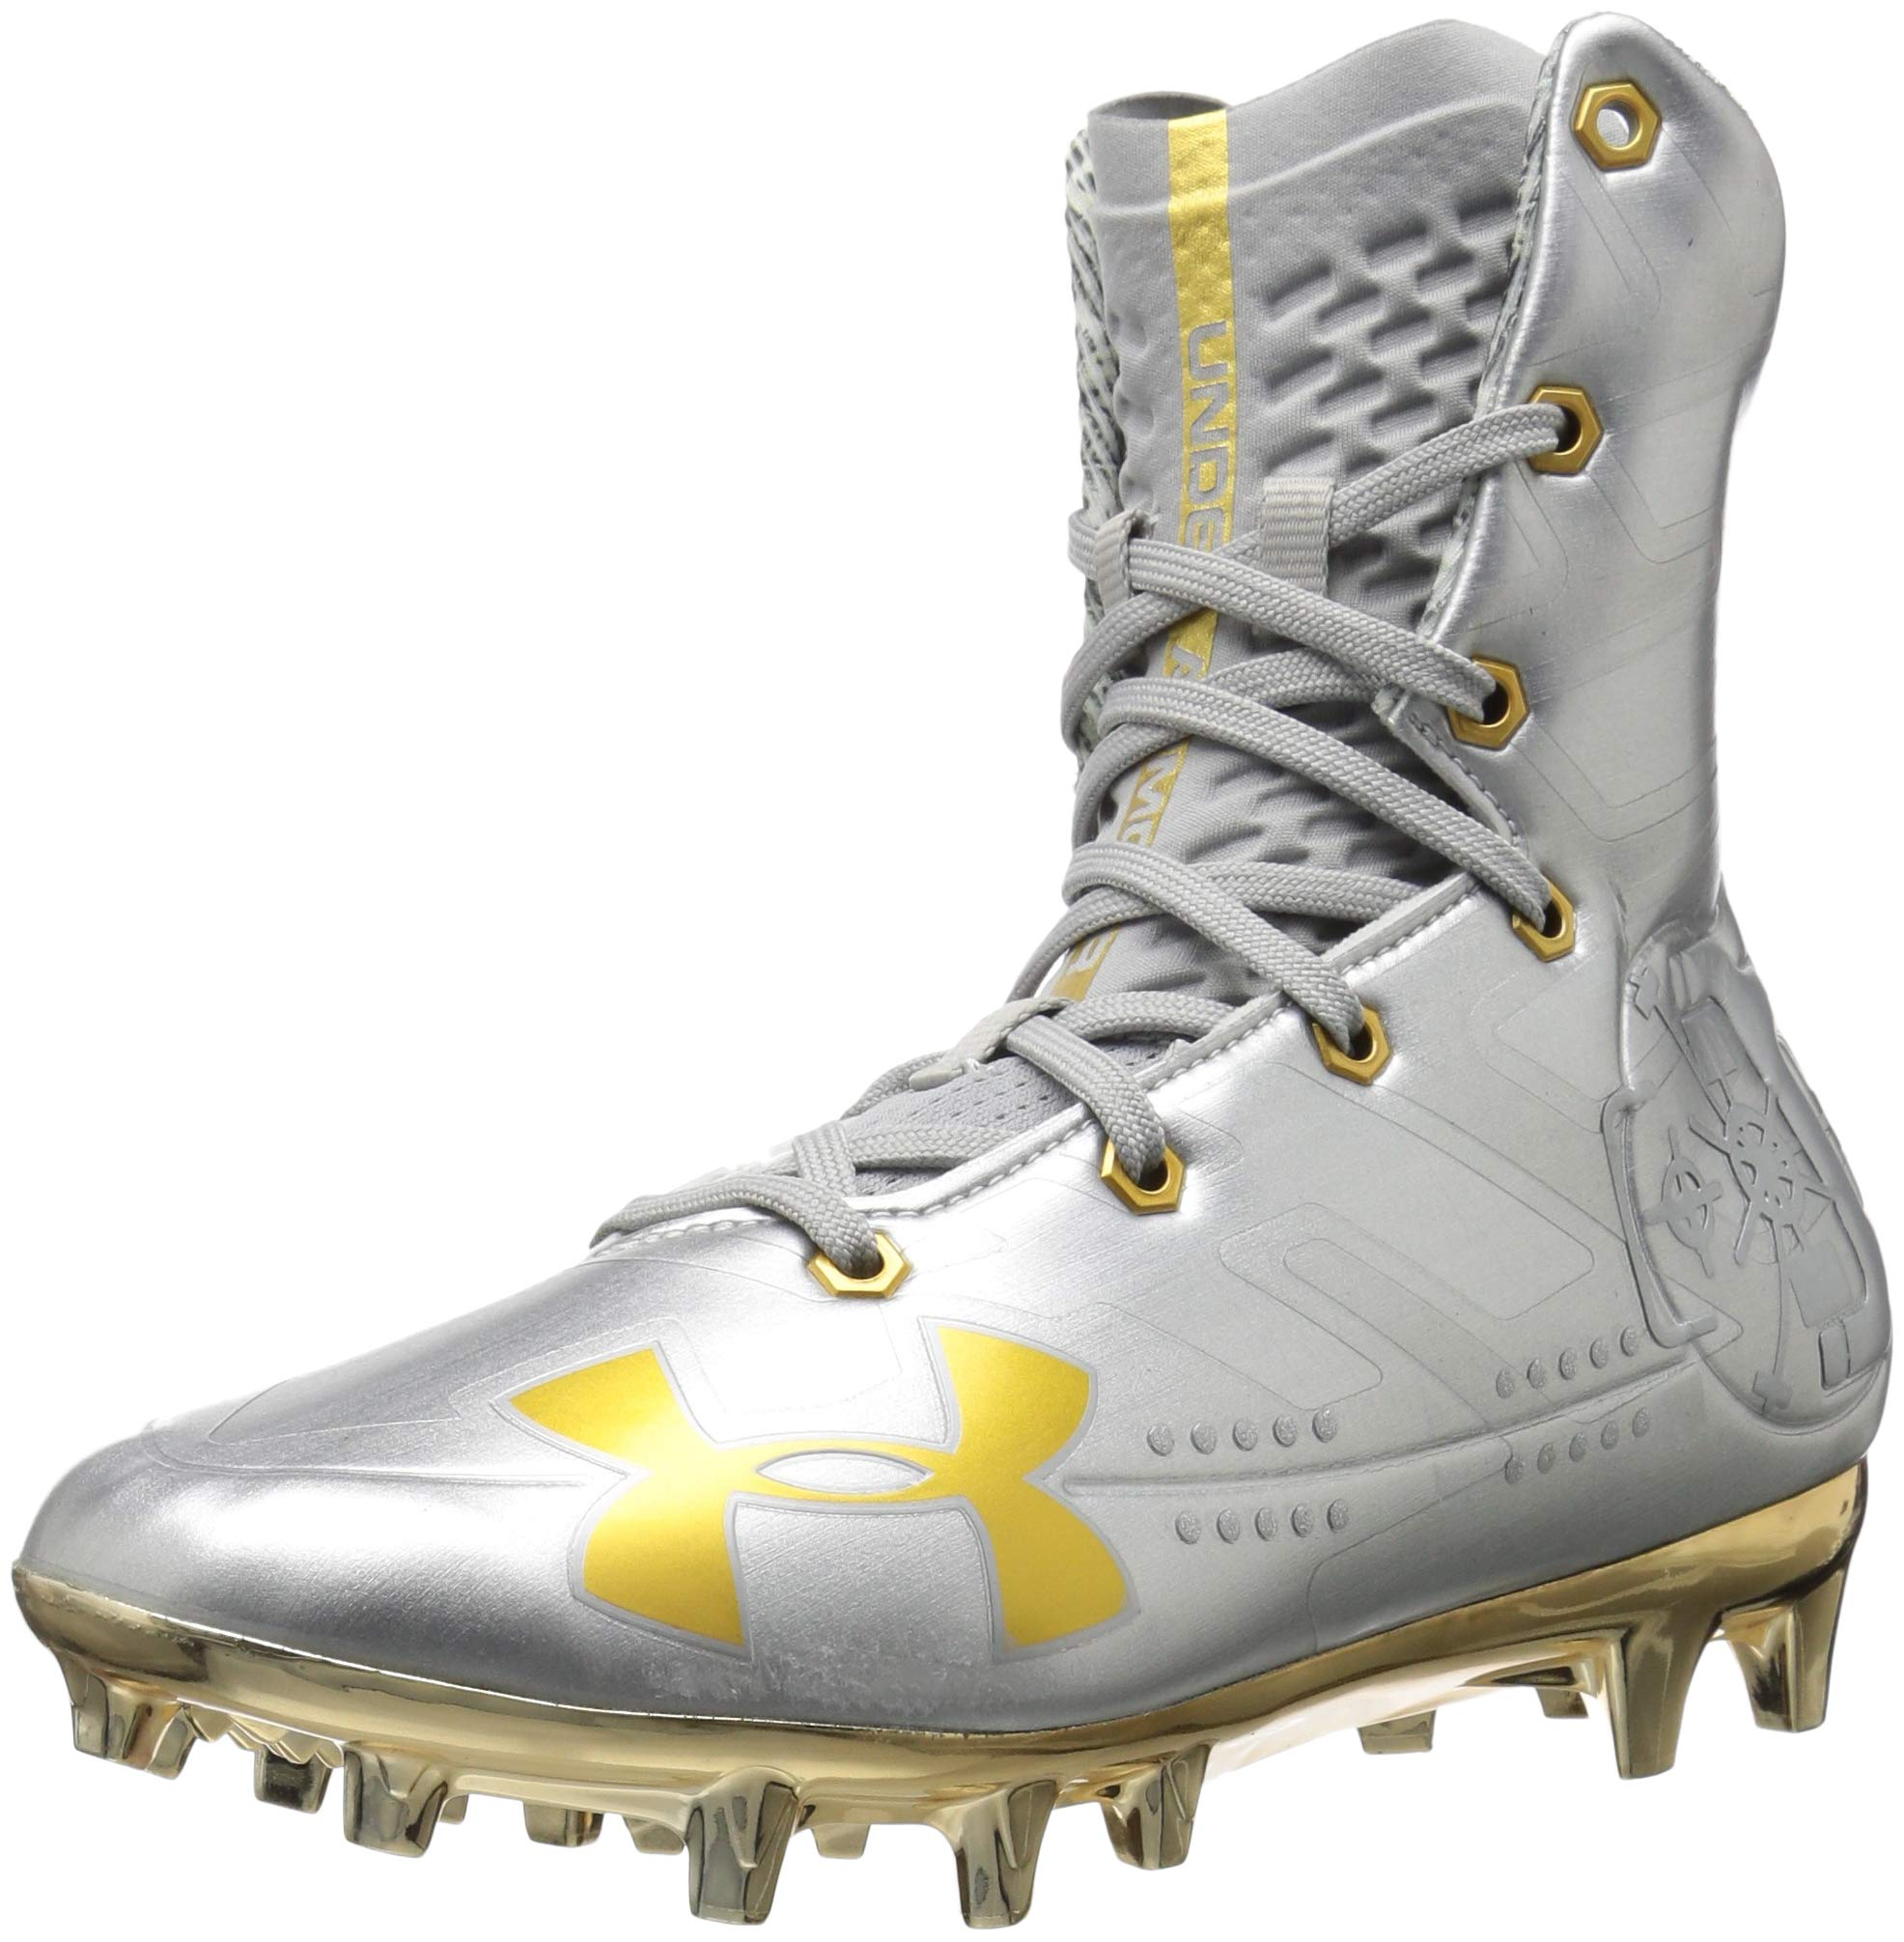 Under Armour Men's Highlight MC-Limited Edition Football Shoe, Silver (100)/Metallic Gold, 8